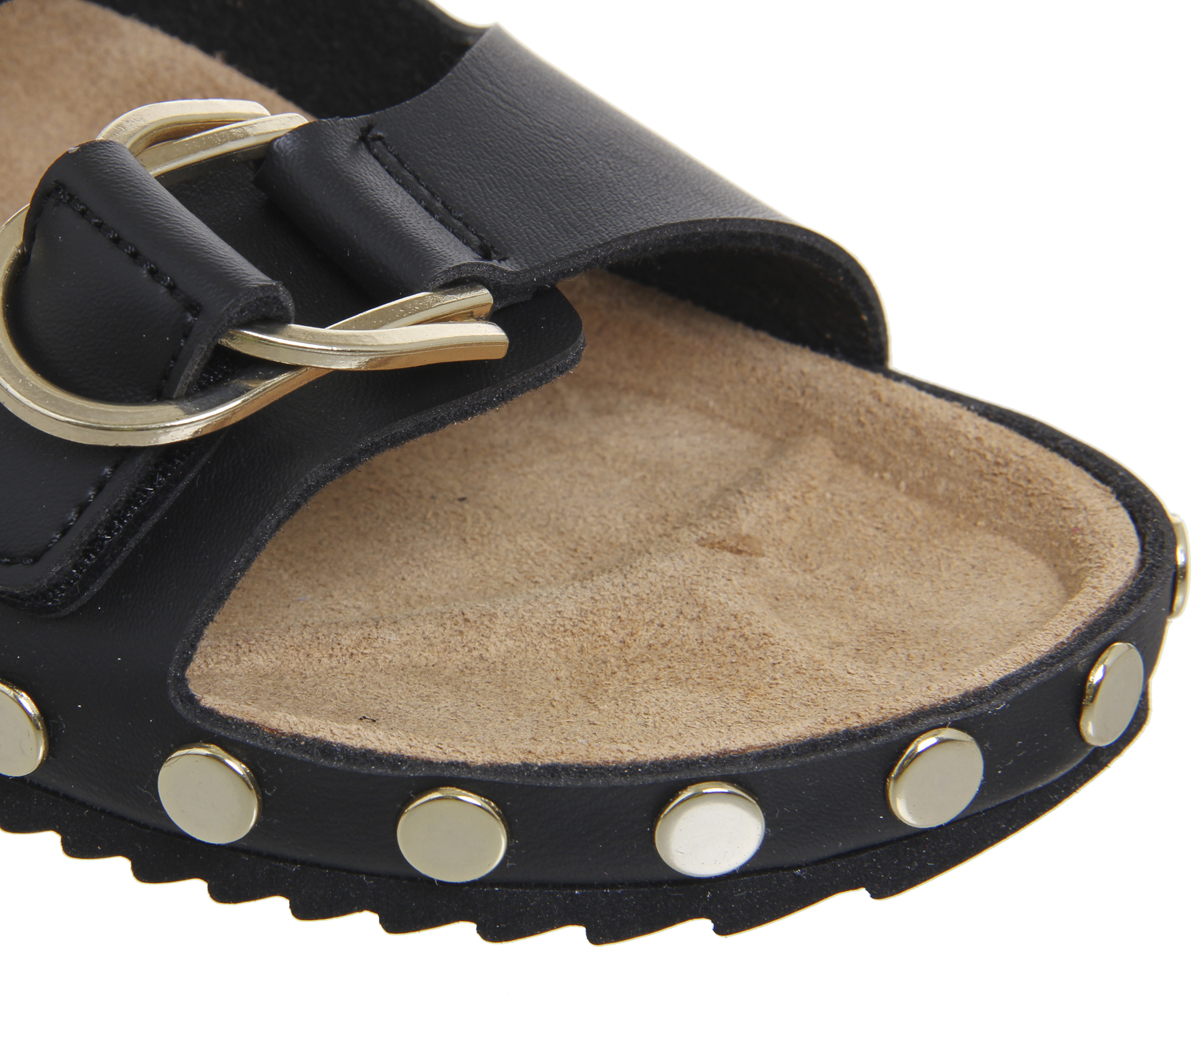 Damenschuhe Office Supersonic Footbed Sandales GOLD BLACK WITH GOLD Sandales STUDS Sandales ace1ad